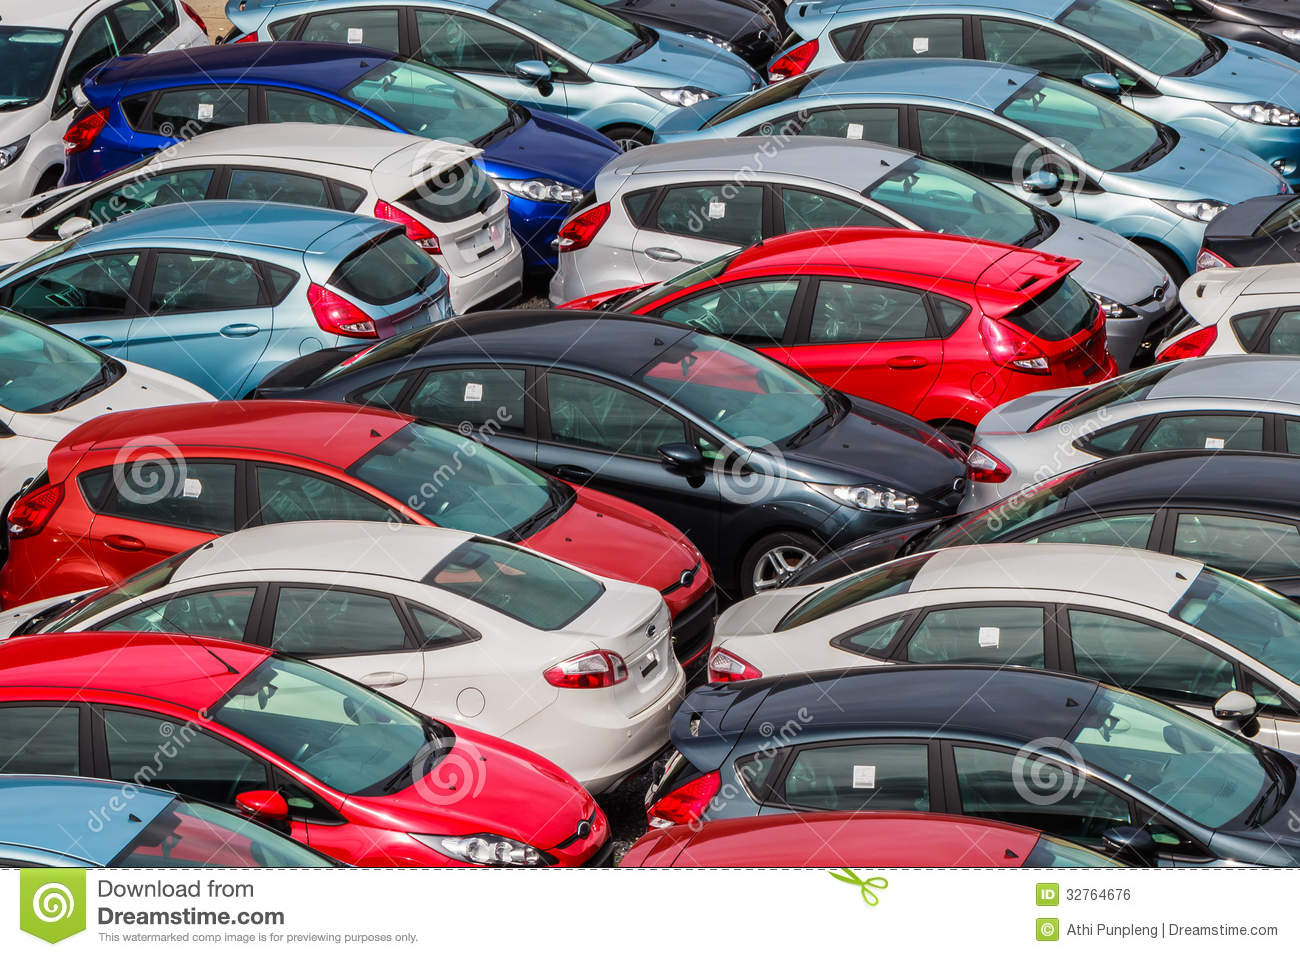 Brand new motor vehicles crowed in a parking lot